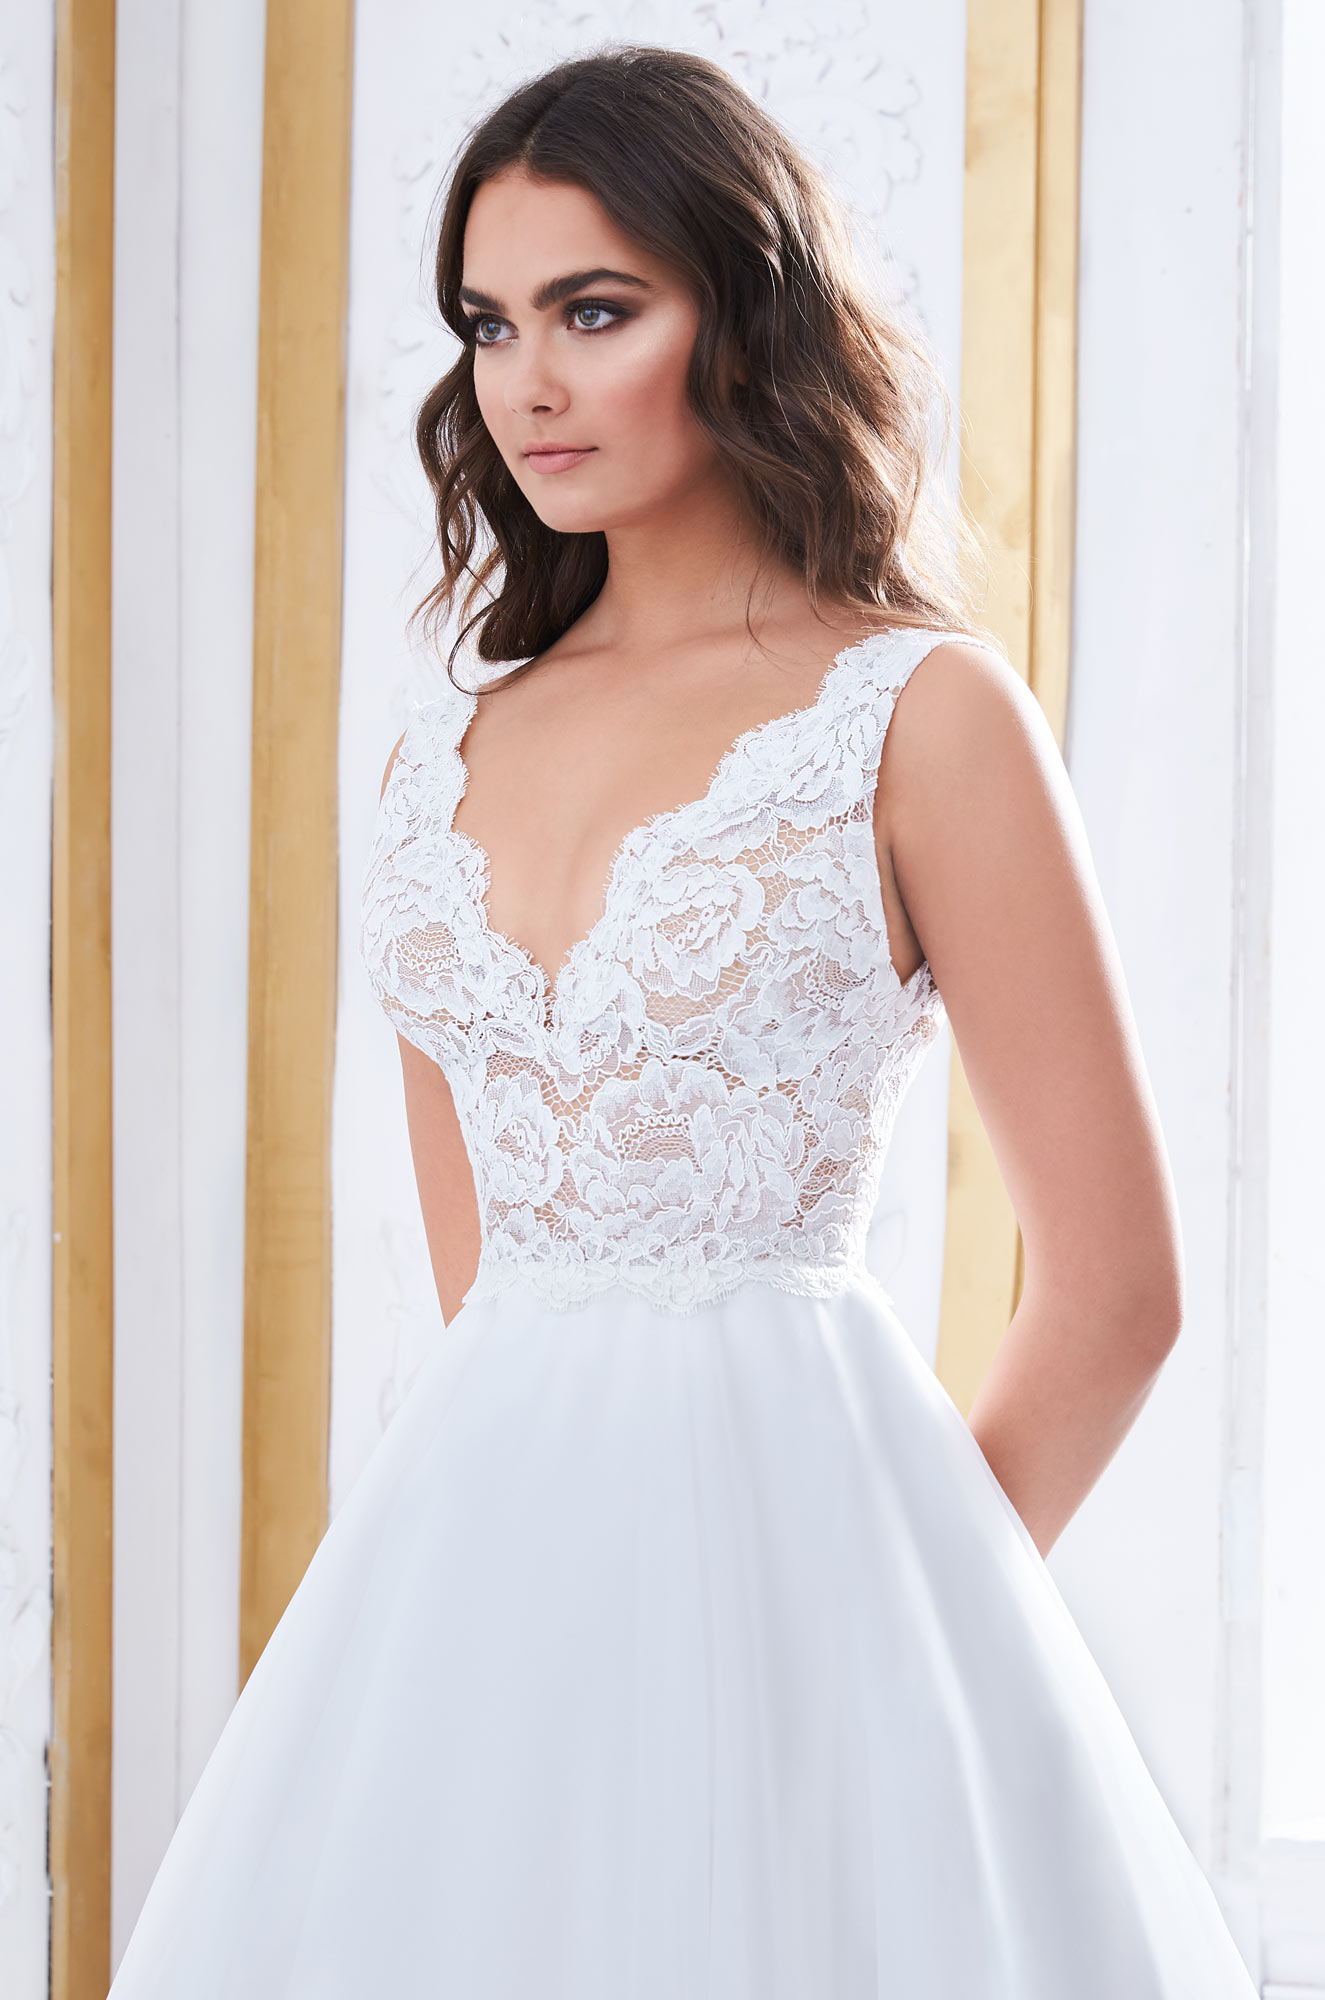 Gorgeous Wedding Dress With Pockets – Style #4852 | Paloma Blanca